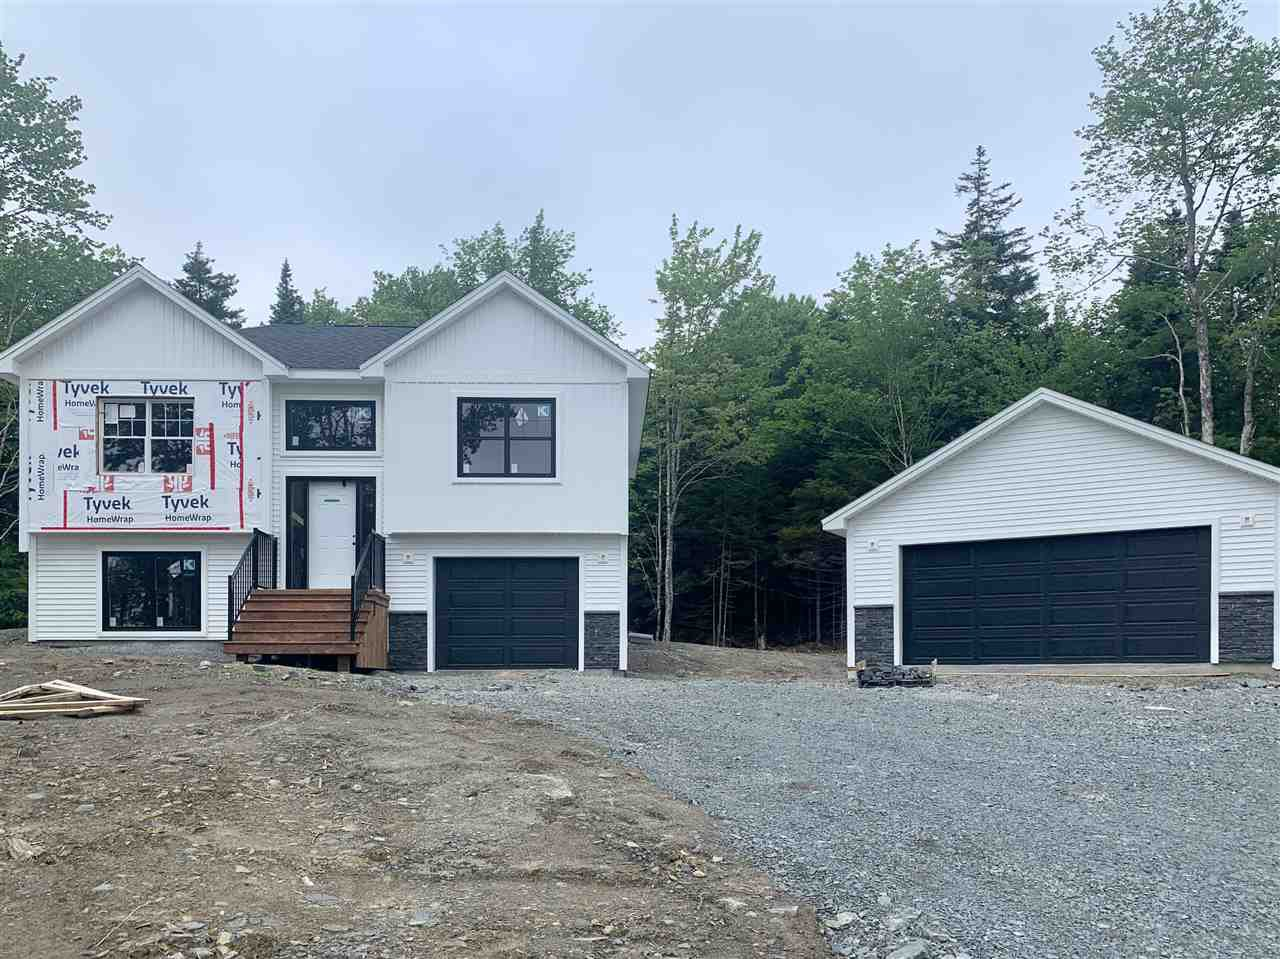 Main Photo: Lot 723 635 Magenta Drive in Middle Sackville: 25-Sackville Residential for sale (Halifax-Dartmouth)  : MLS®# 202002985